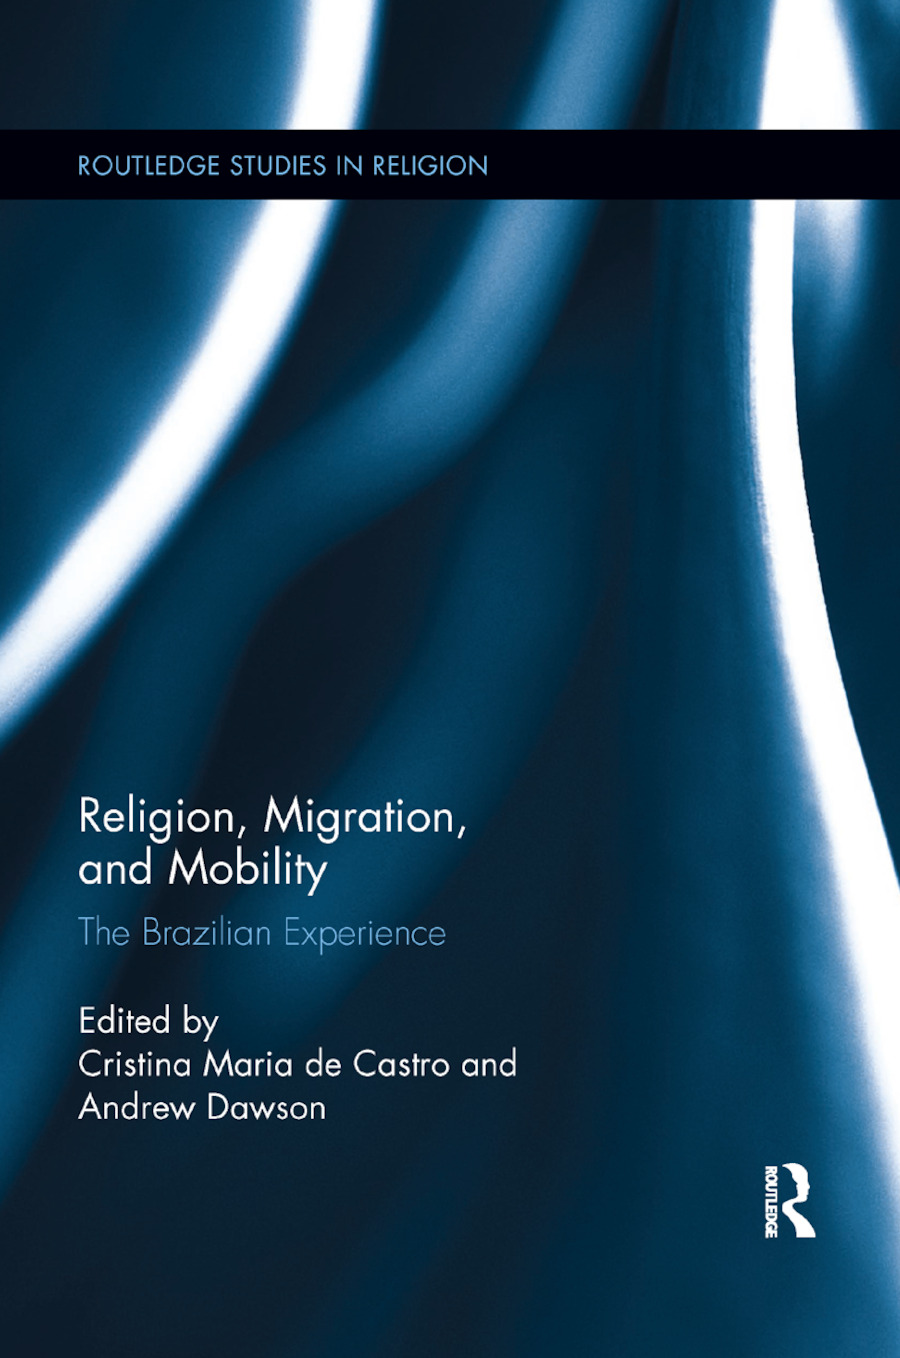 Religion, Migration, and Mobility